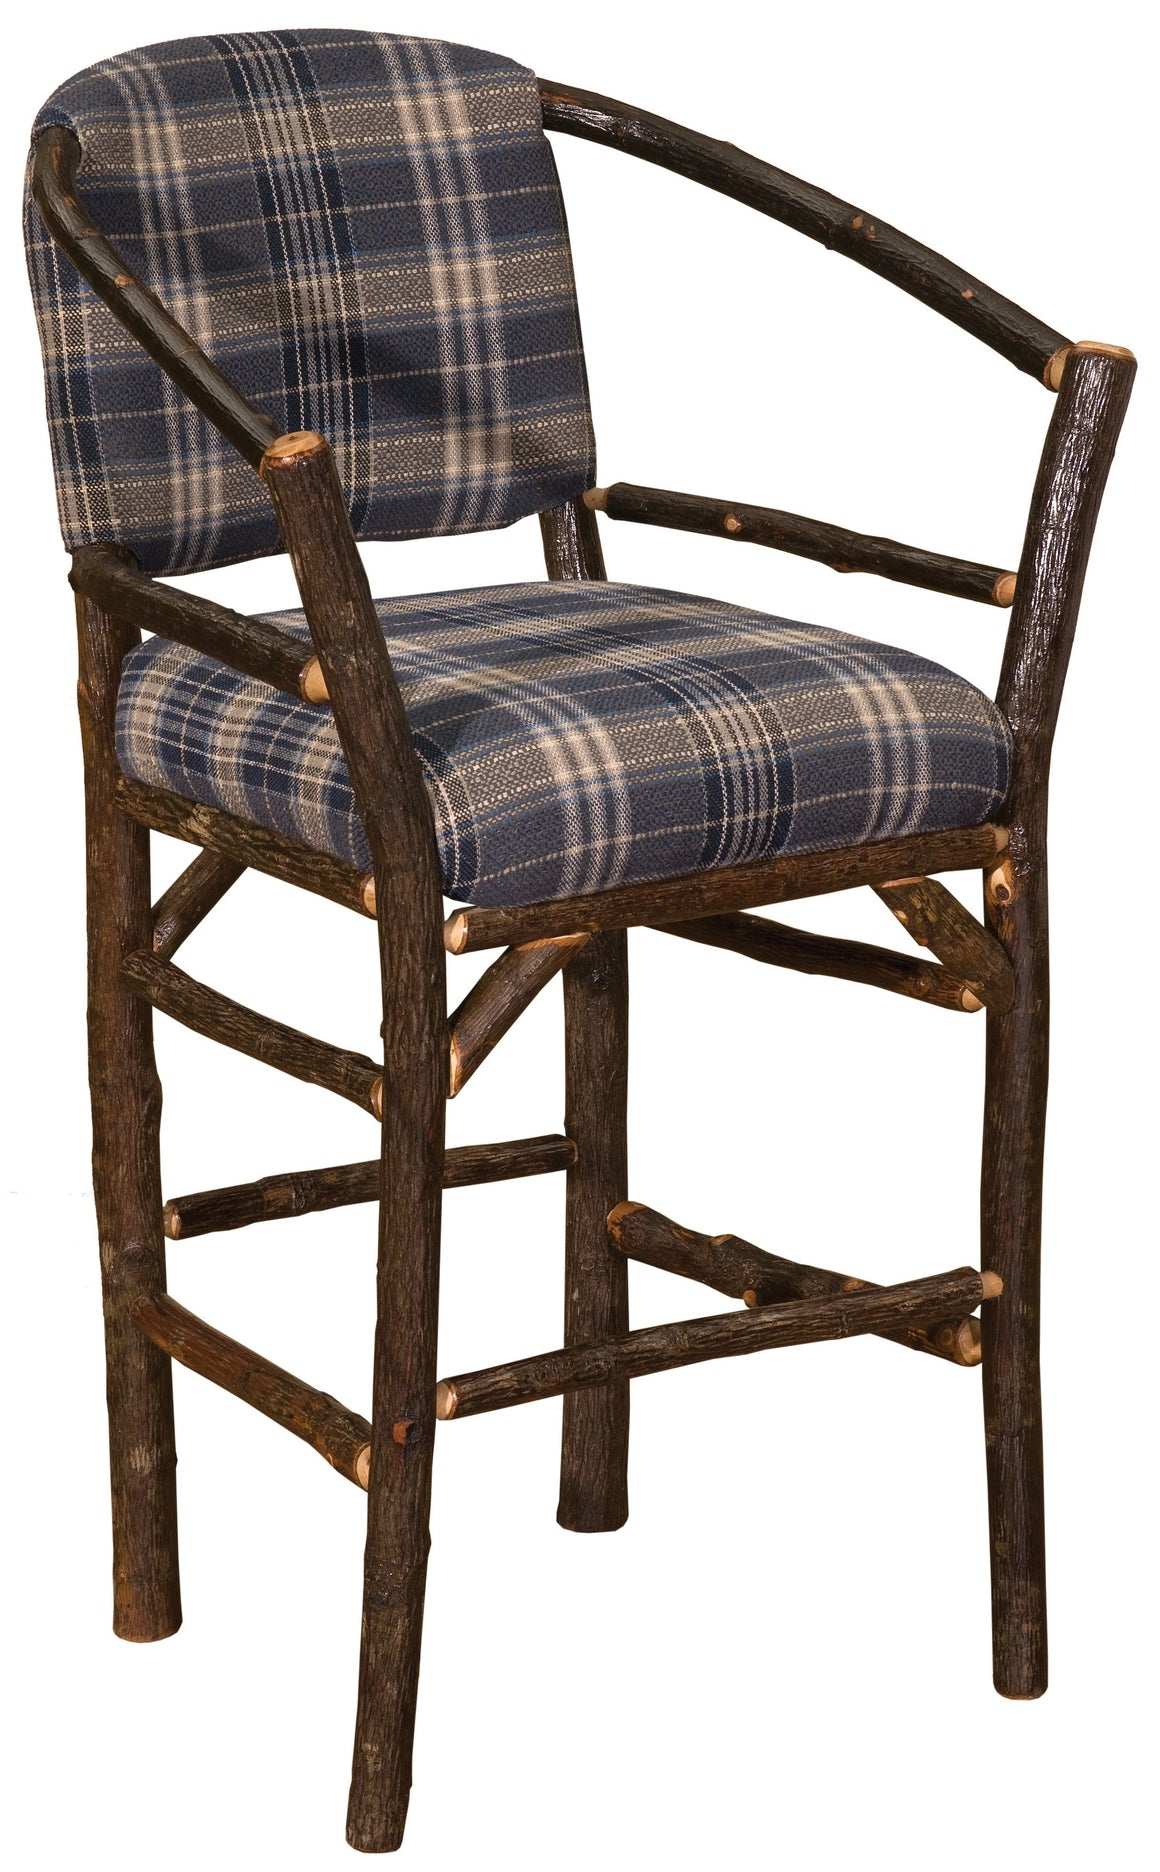 Real Hickory Log Hoop Counter Stool Chair - Custom Upholstered-Rustic Deco Incorporated